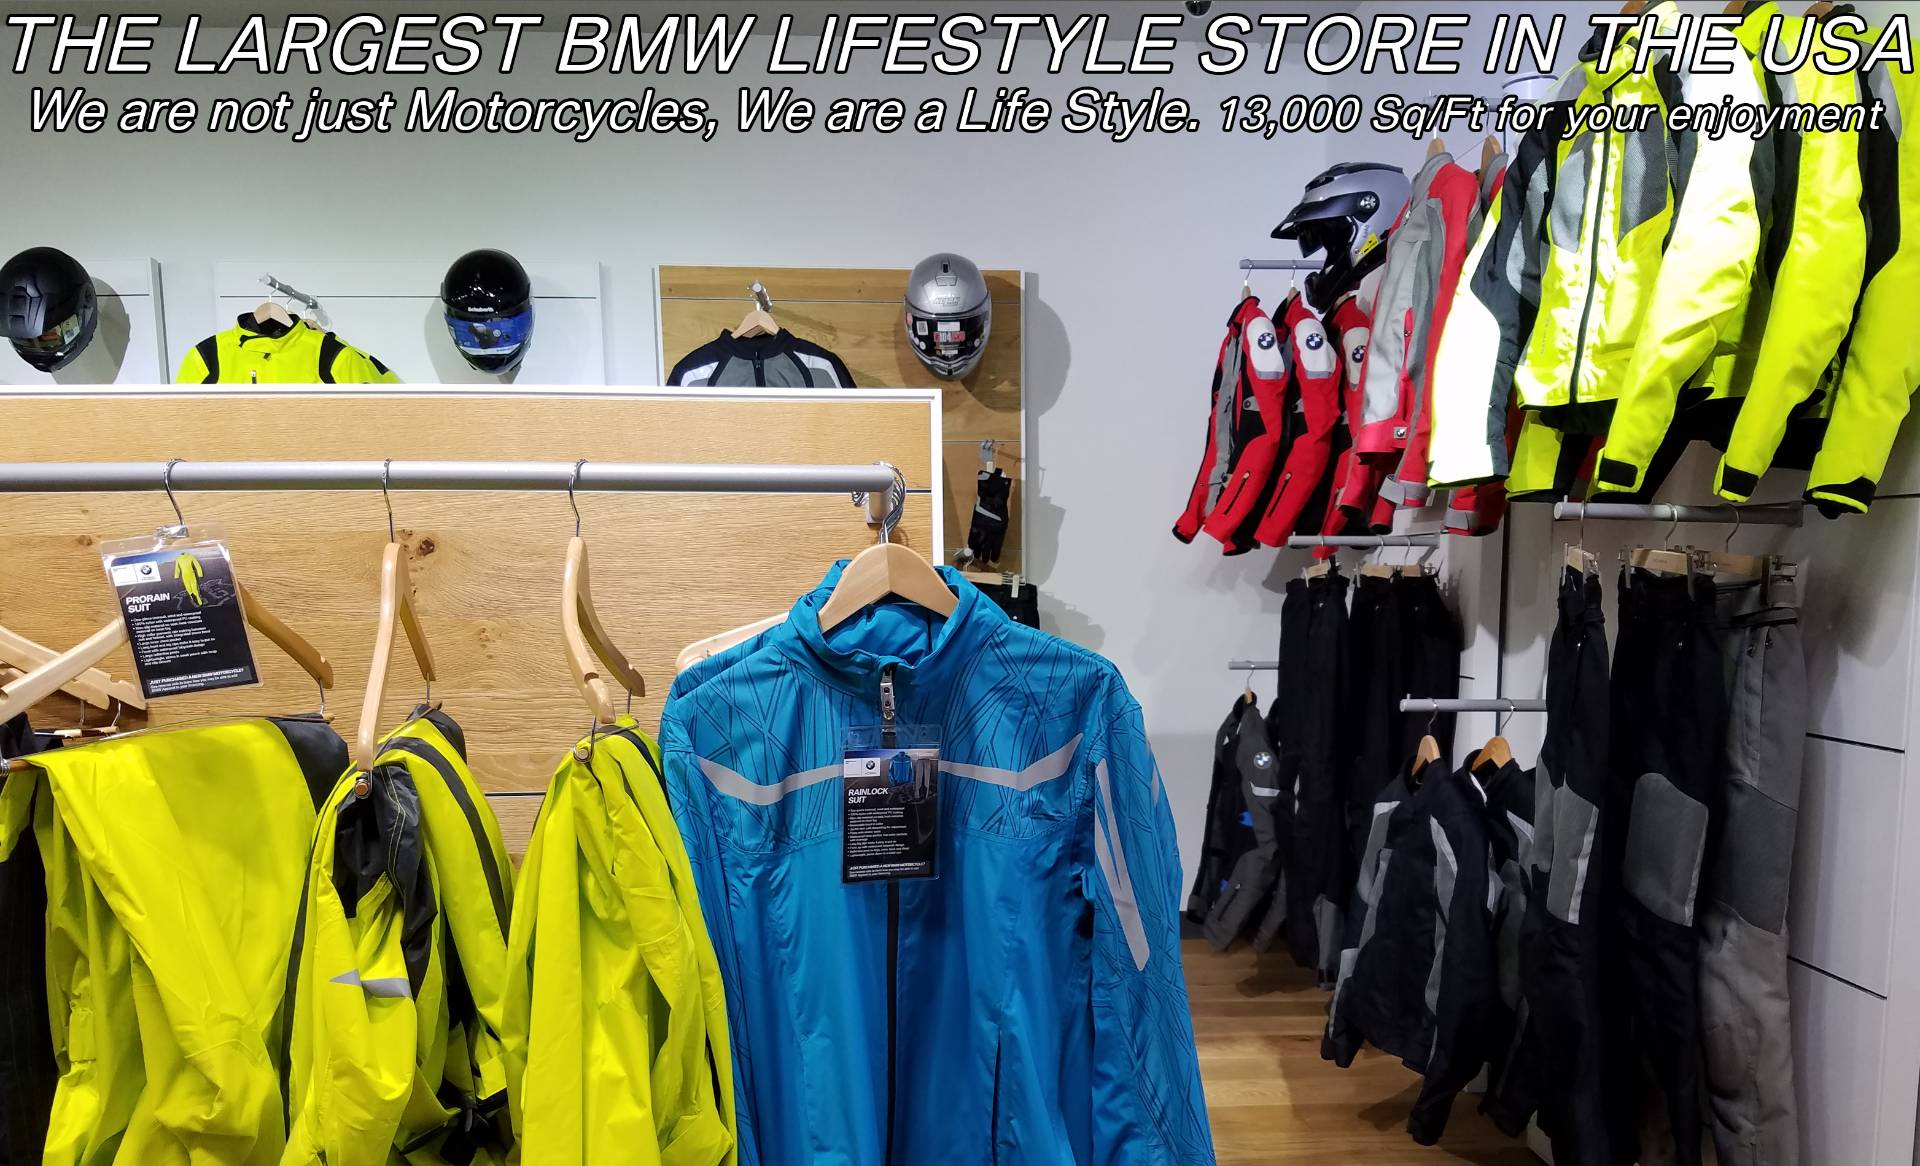 BMW Motorcycles of Miami, Motorcycles of Miami, Motorcycles Miami, New Motorcycles, Used Motorcycles, pre-owned. #BMWMotorcyclesOfMiami #MotorcyclesOfMiami. - Photo 31